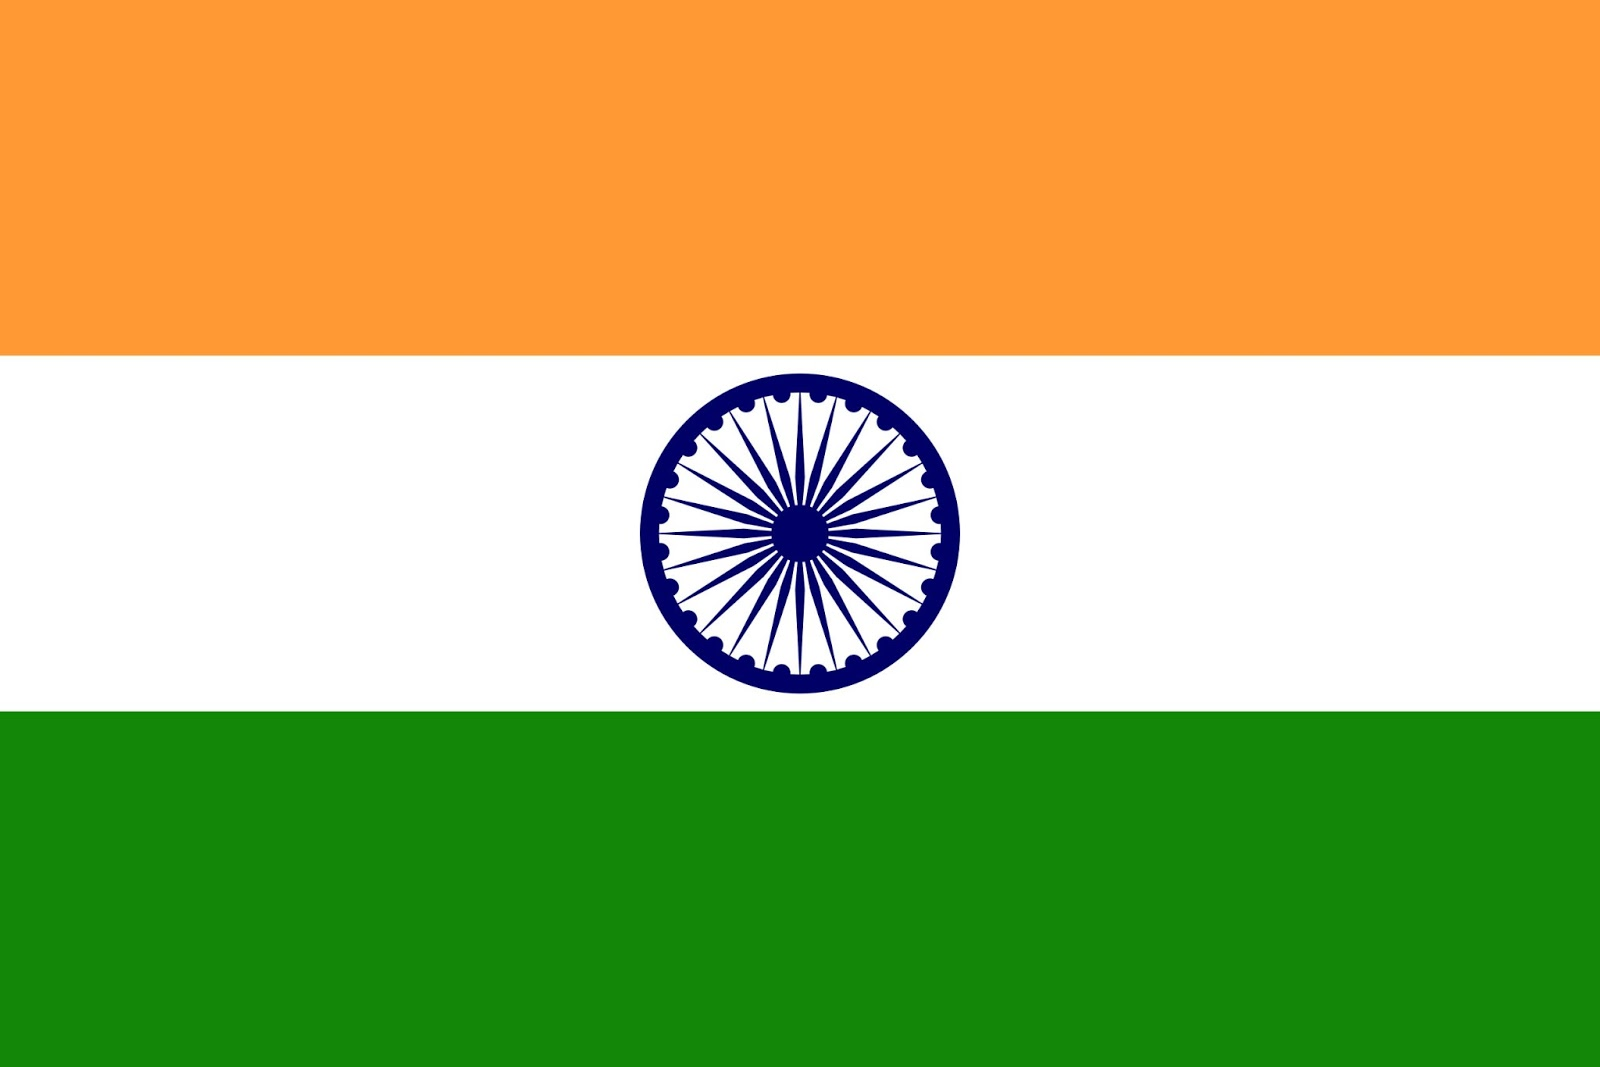 Indian Flag Hd Wallpaper: Download Free HD Wallpapers: Indian